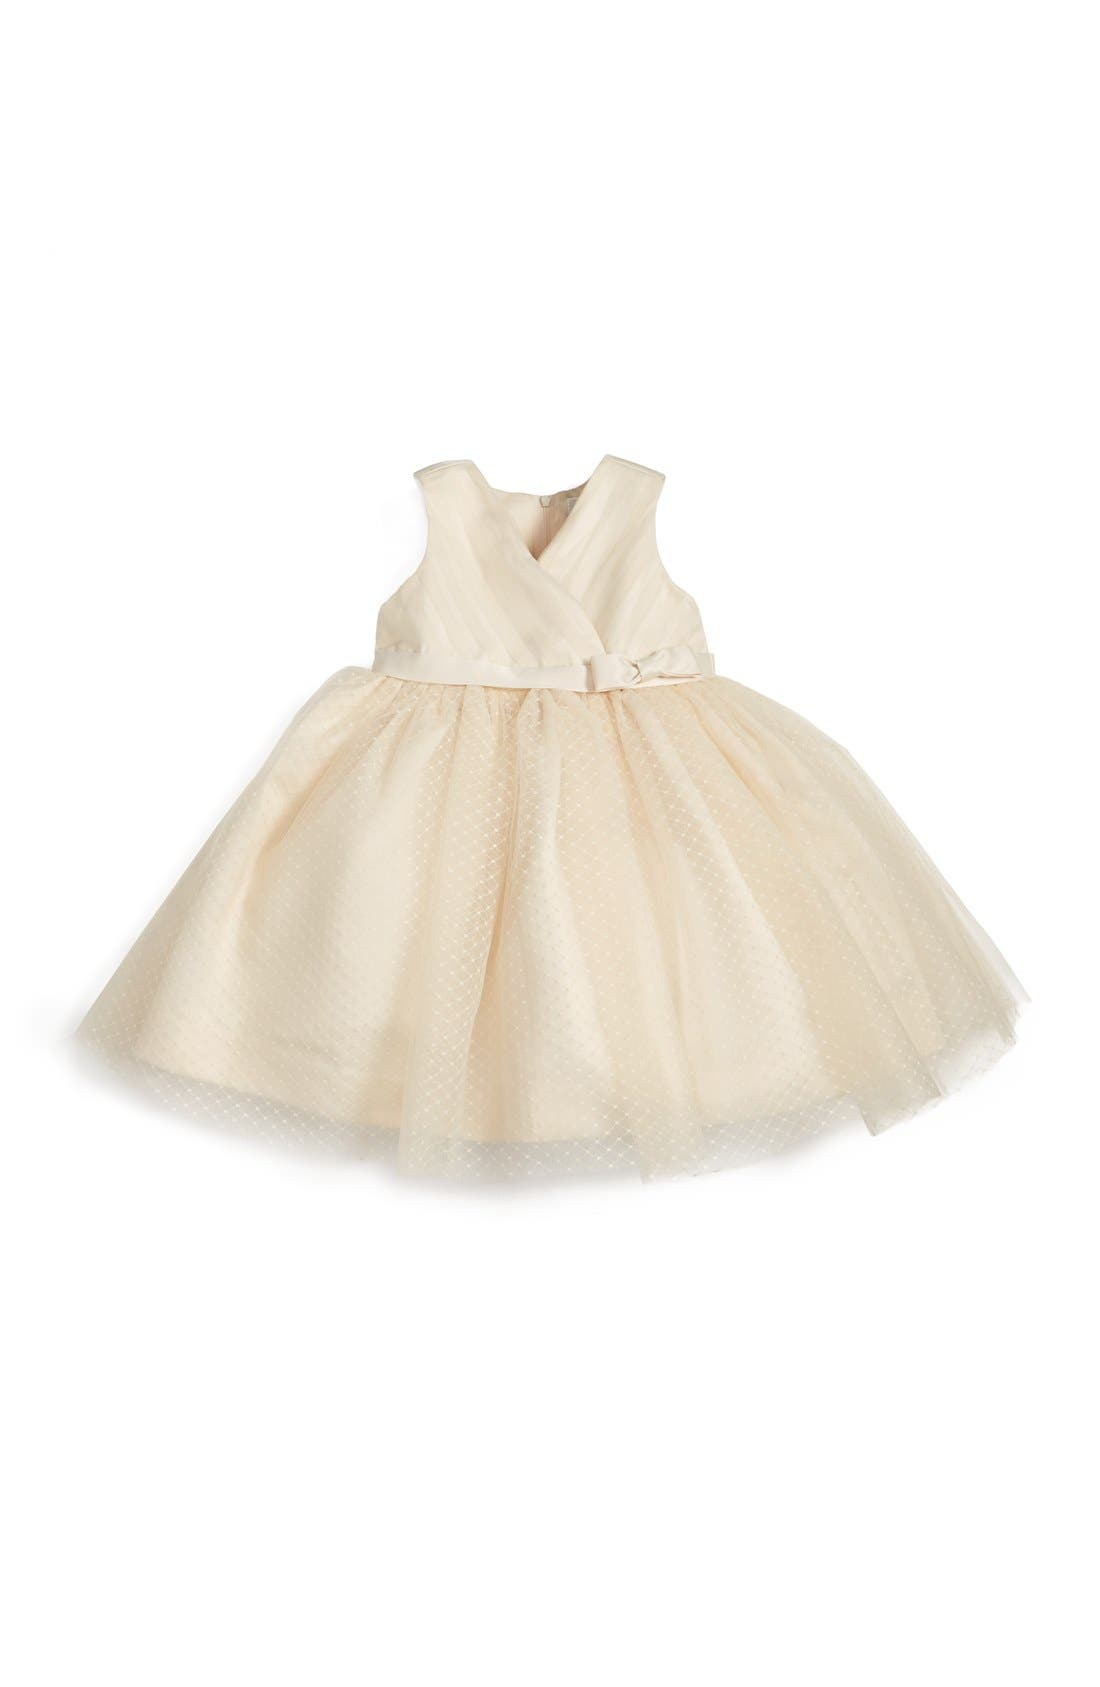 Satin & Tulle Dress,                             Main thumbnail 1, color,                             Sand